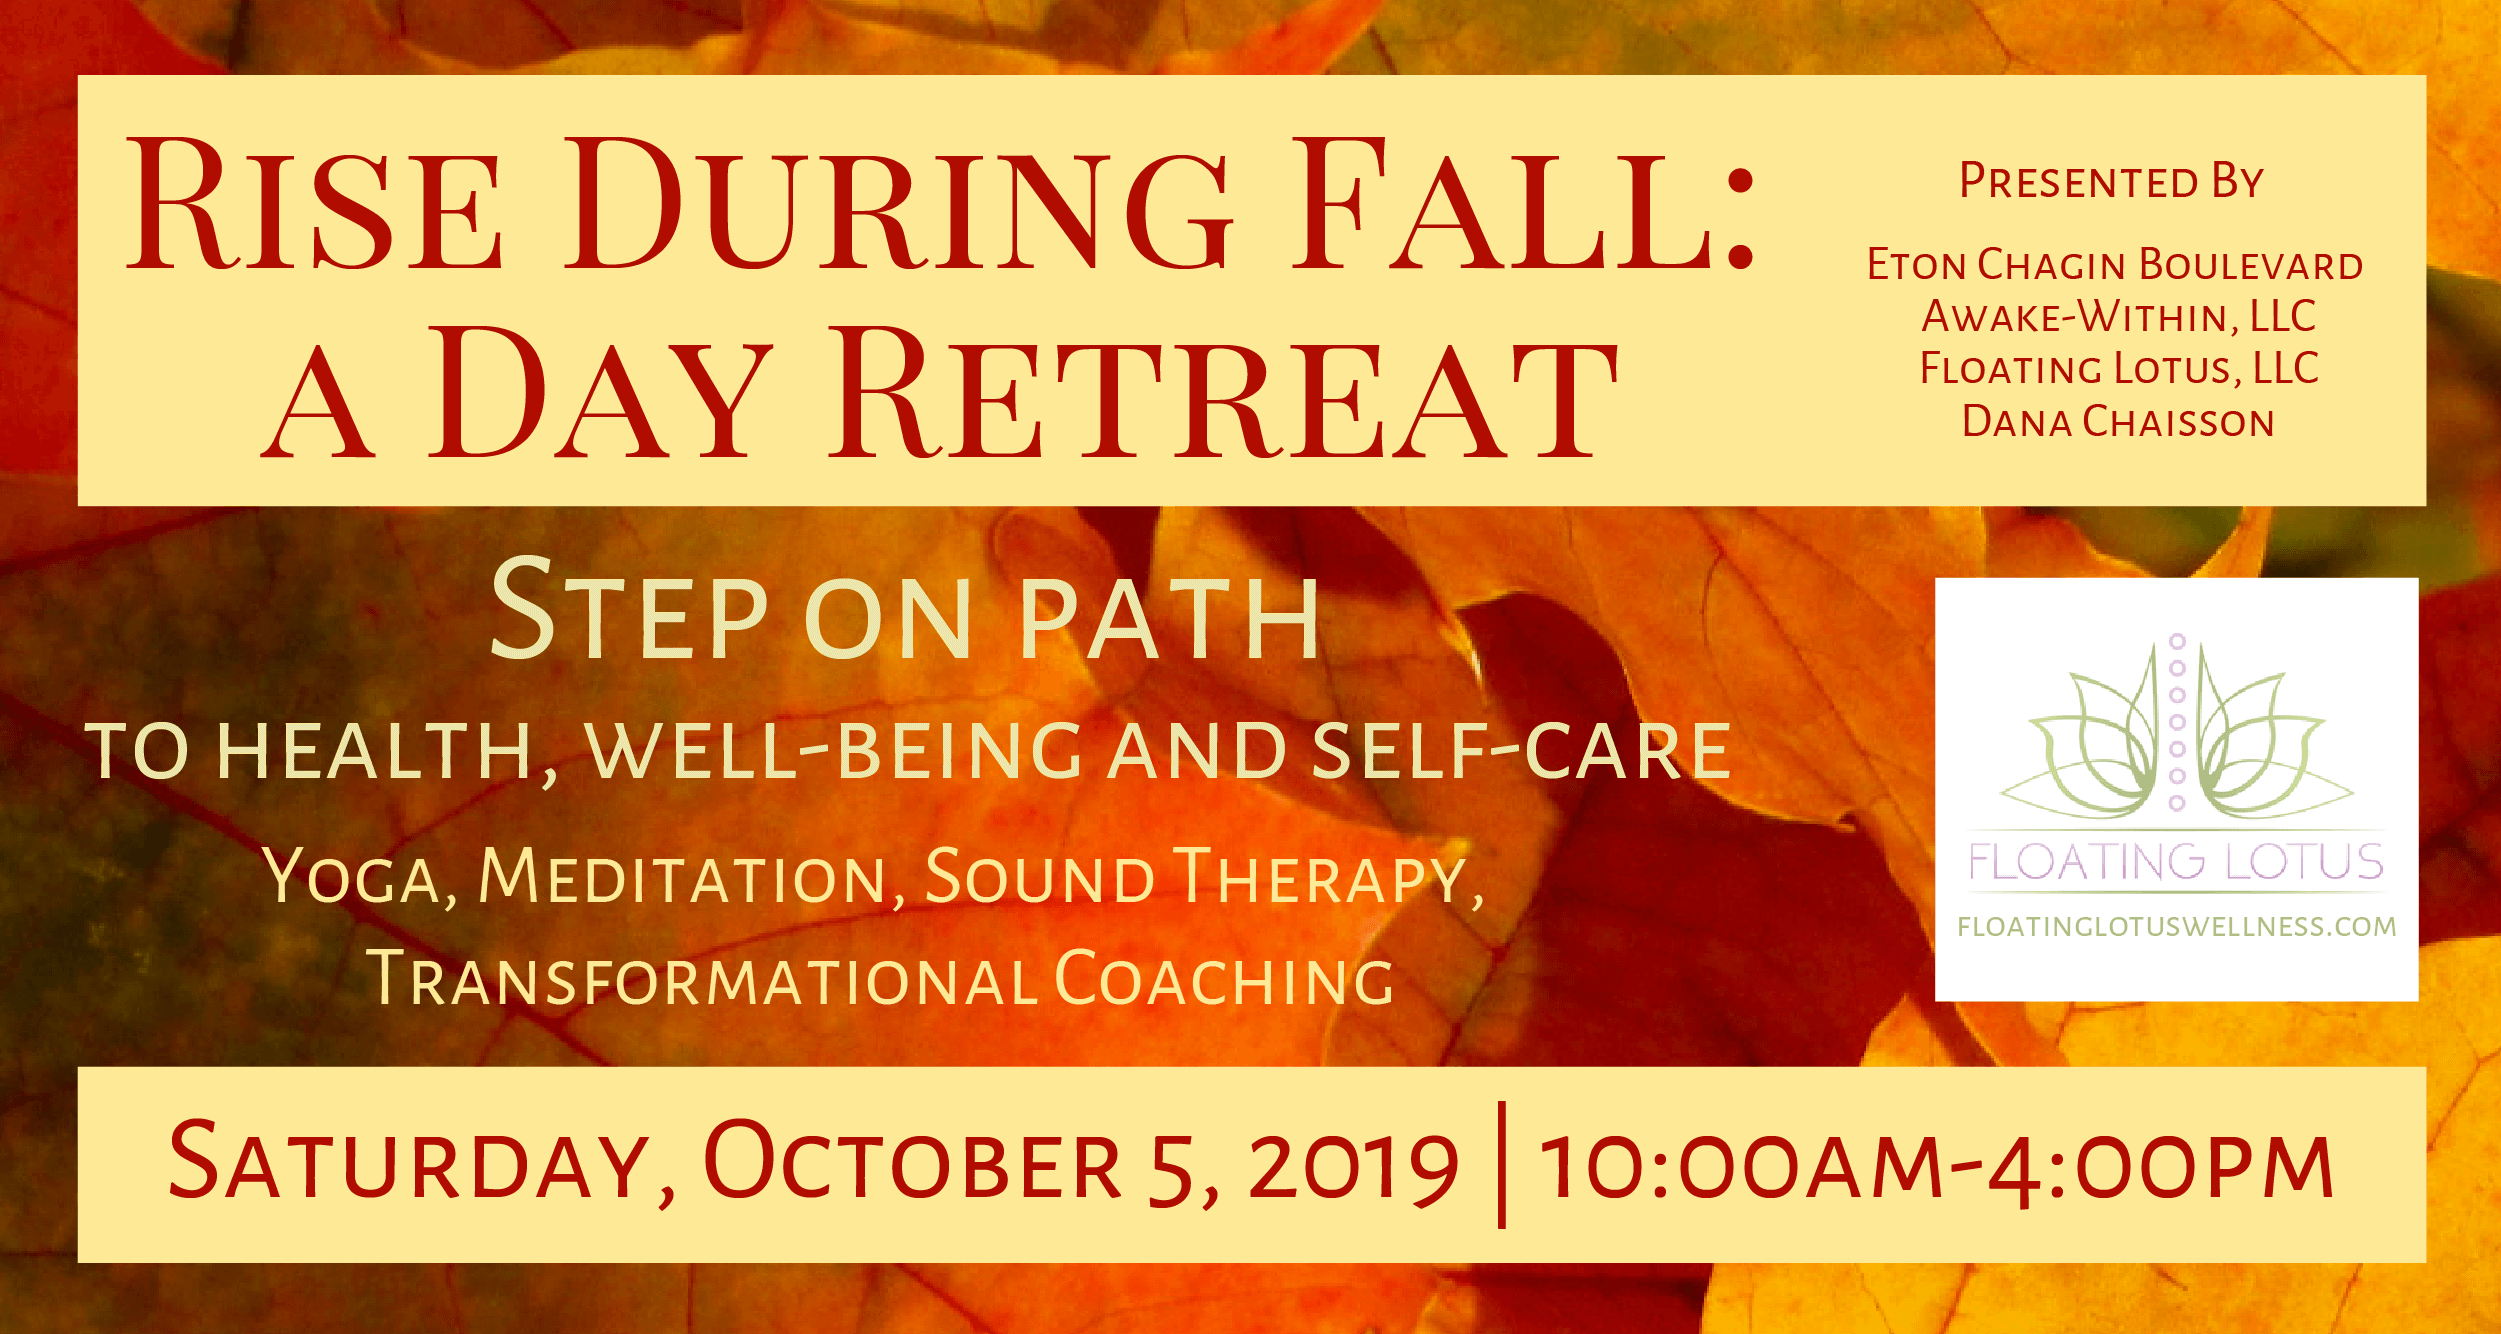 Rise During Fall: A Day Retreat